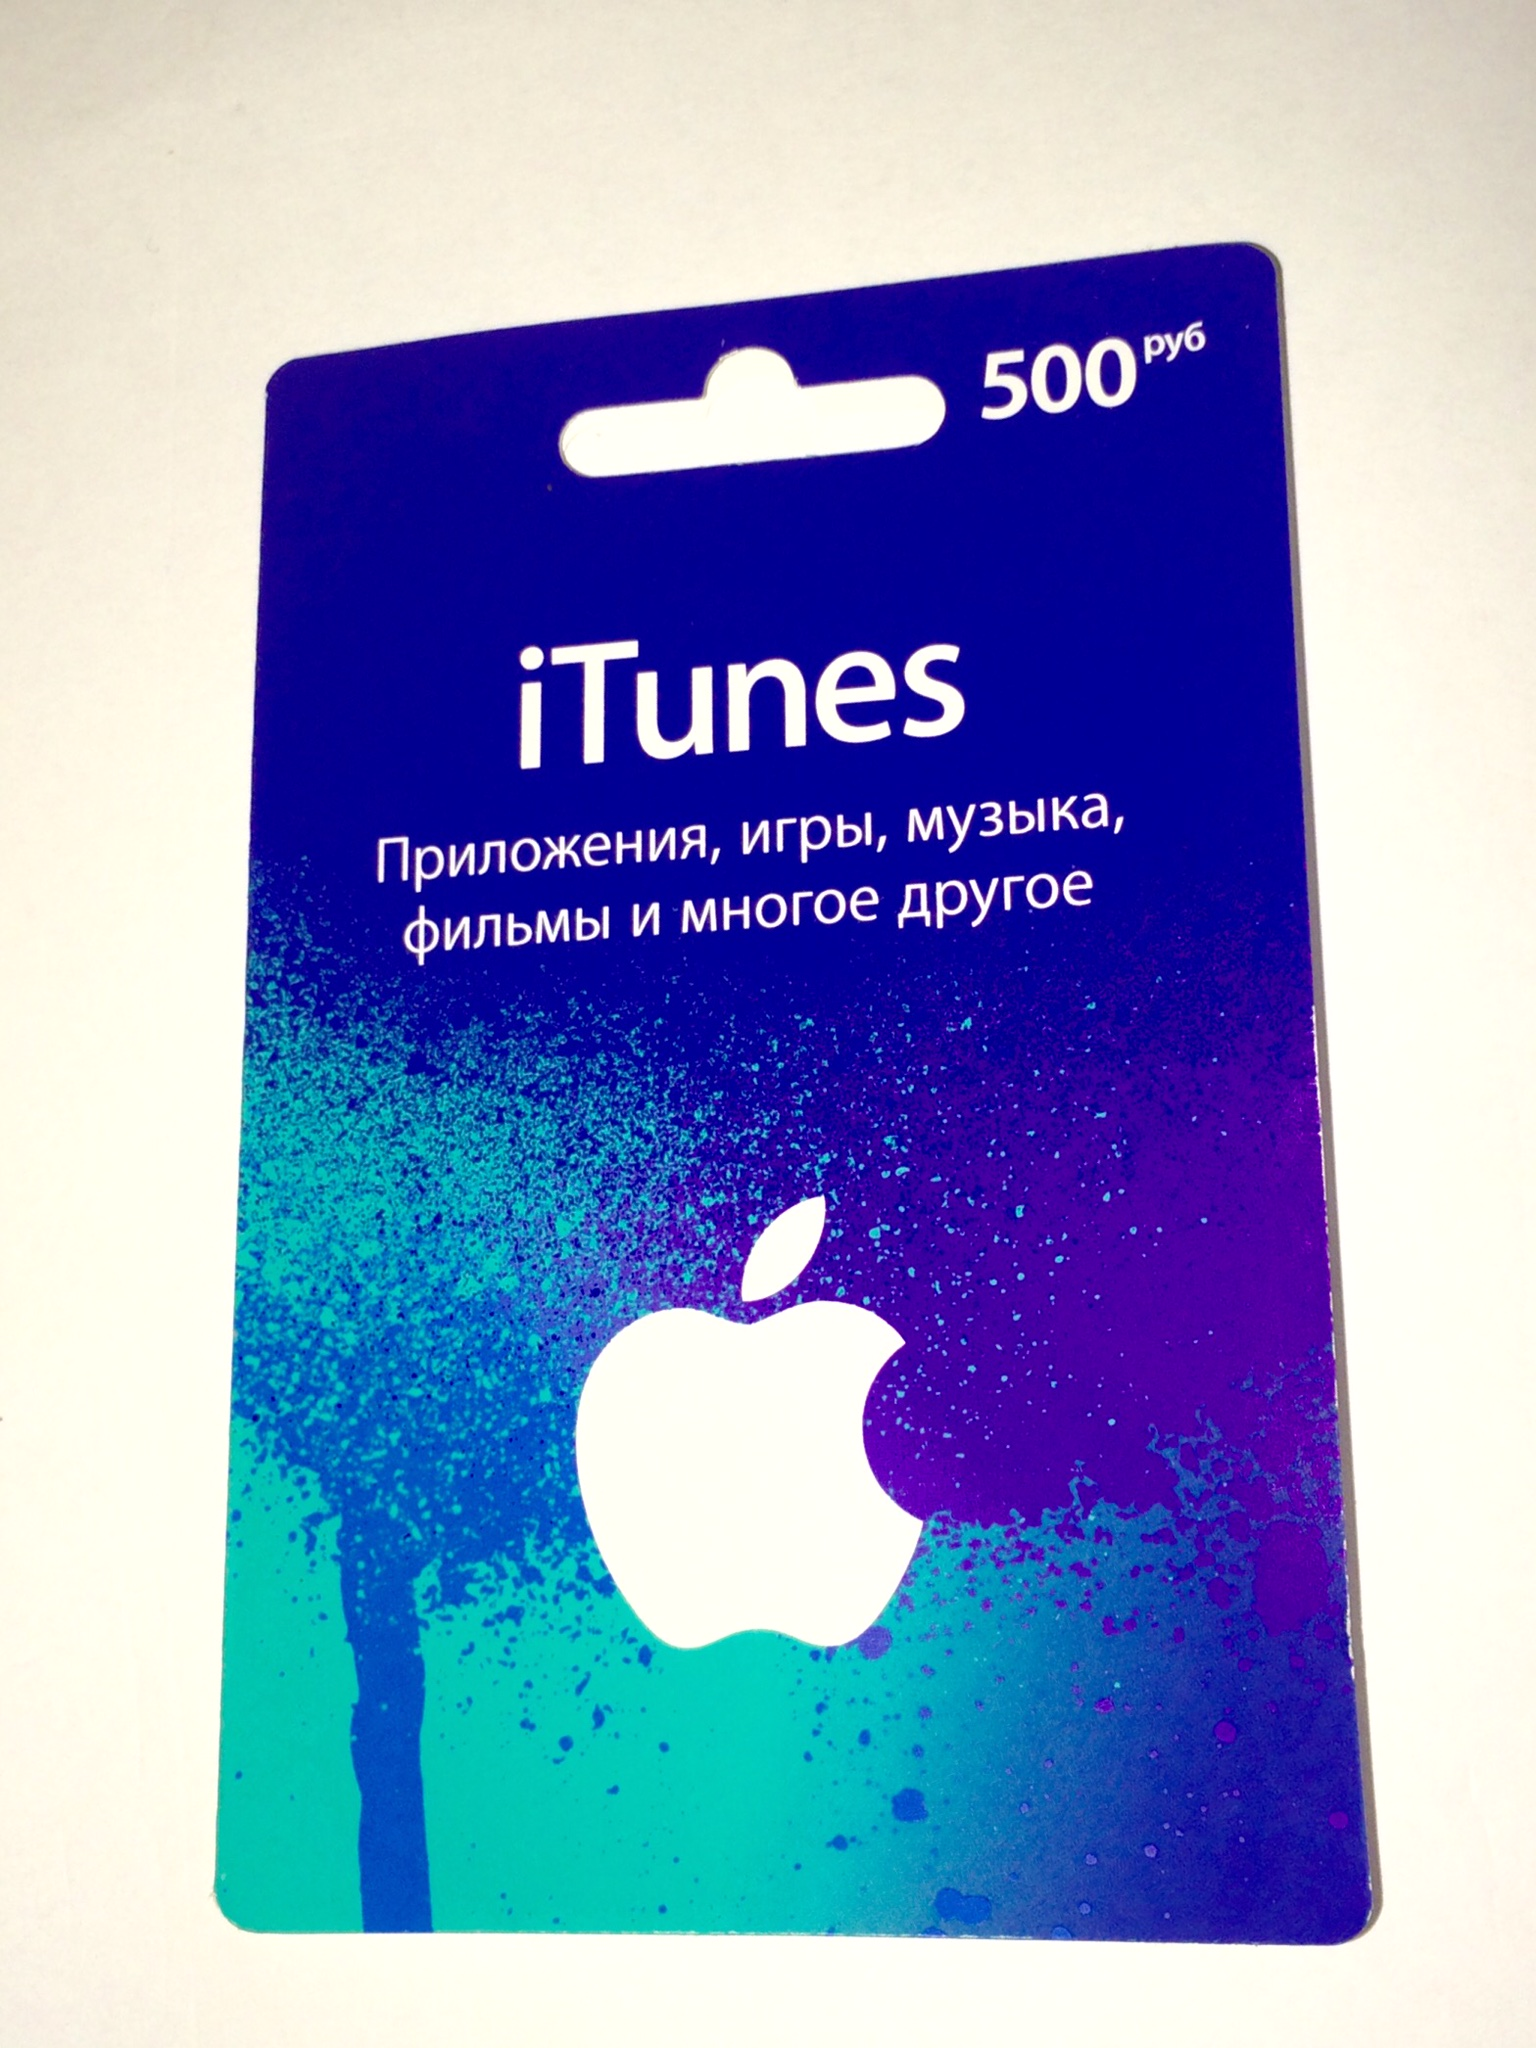 iTunes Gift (Russia) 500 RUB. Warranty.